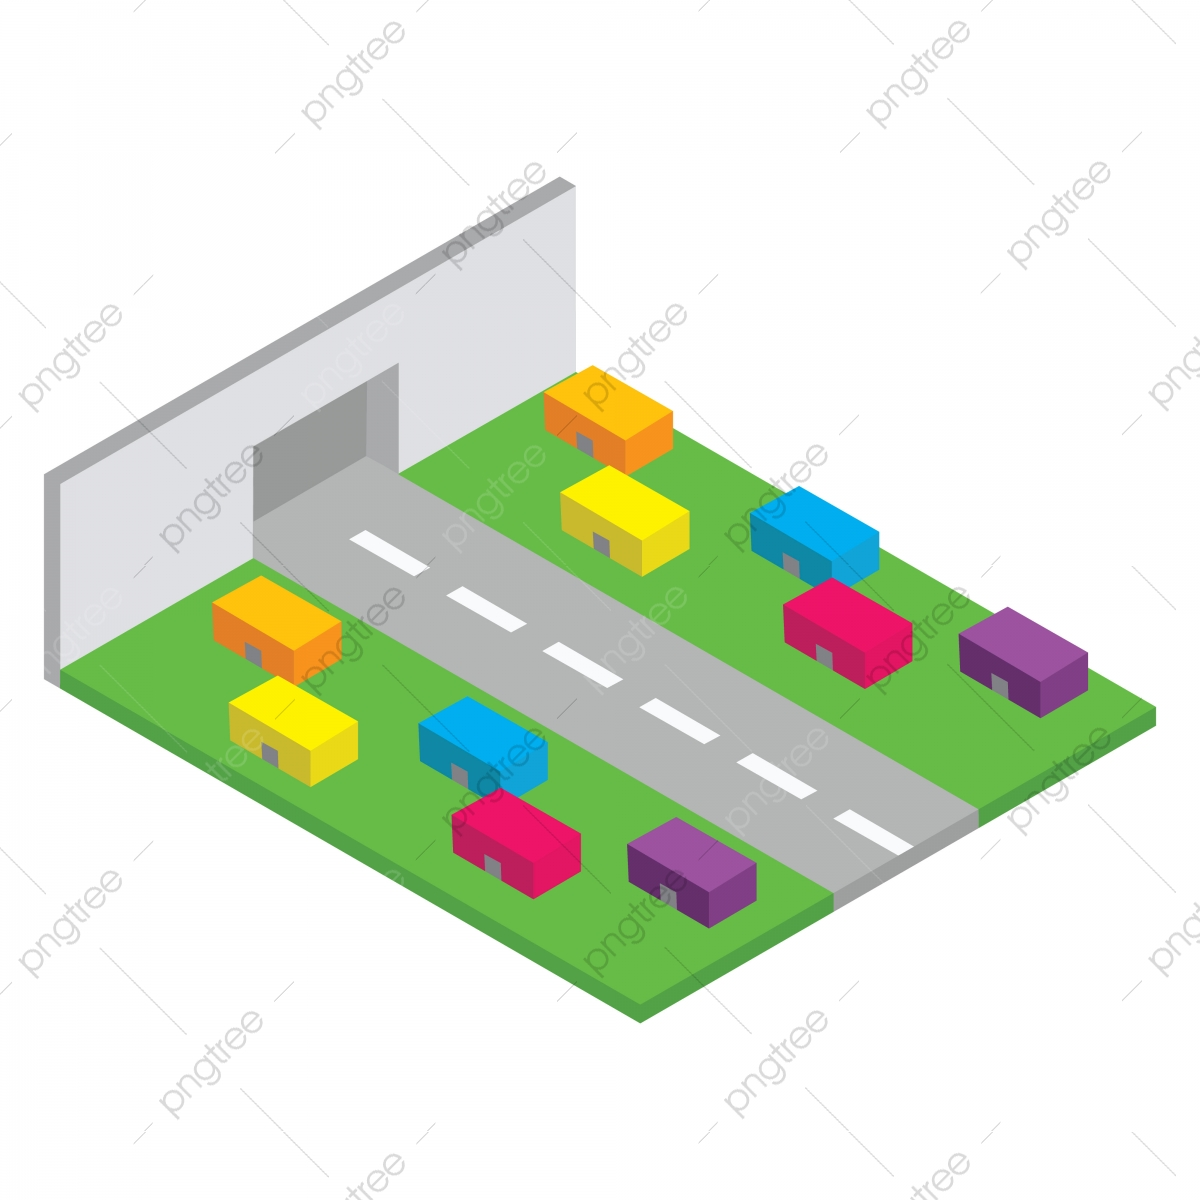 Modern Isometric City, 3d, Architecture, Building PNG and Vector